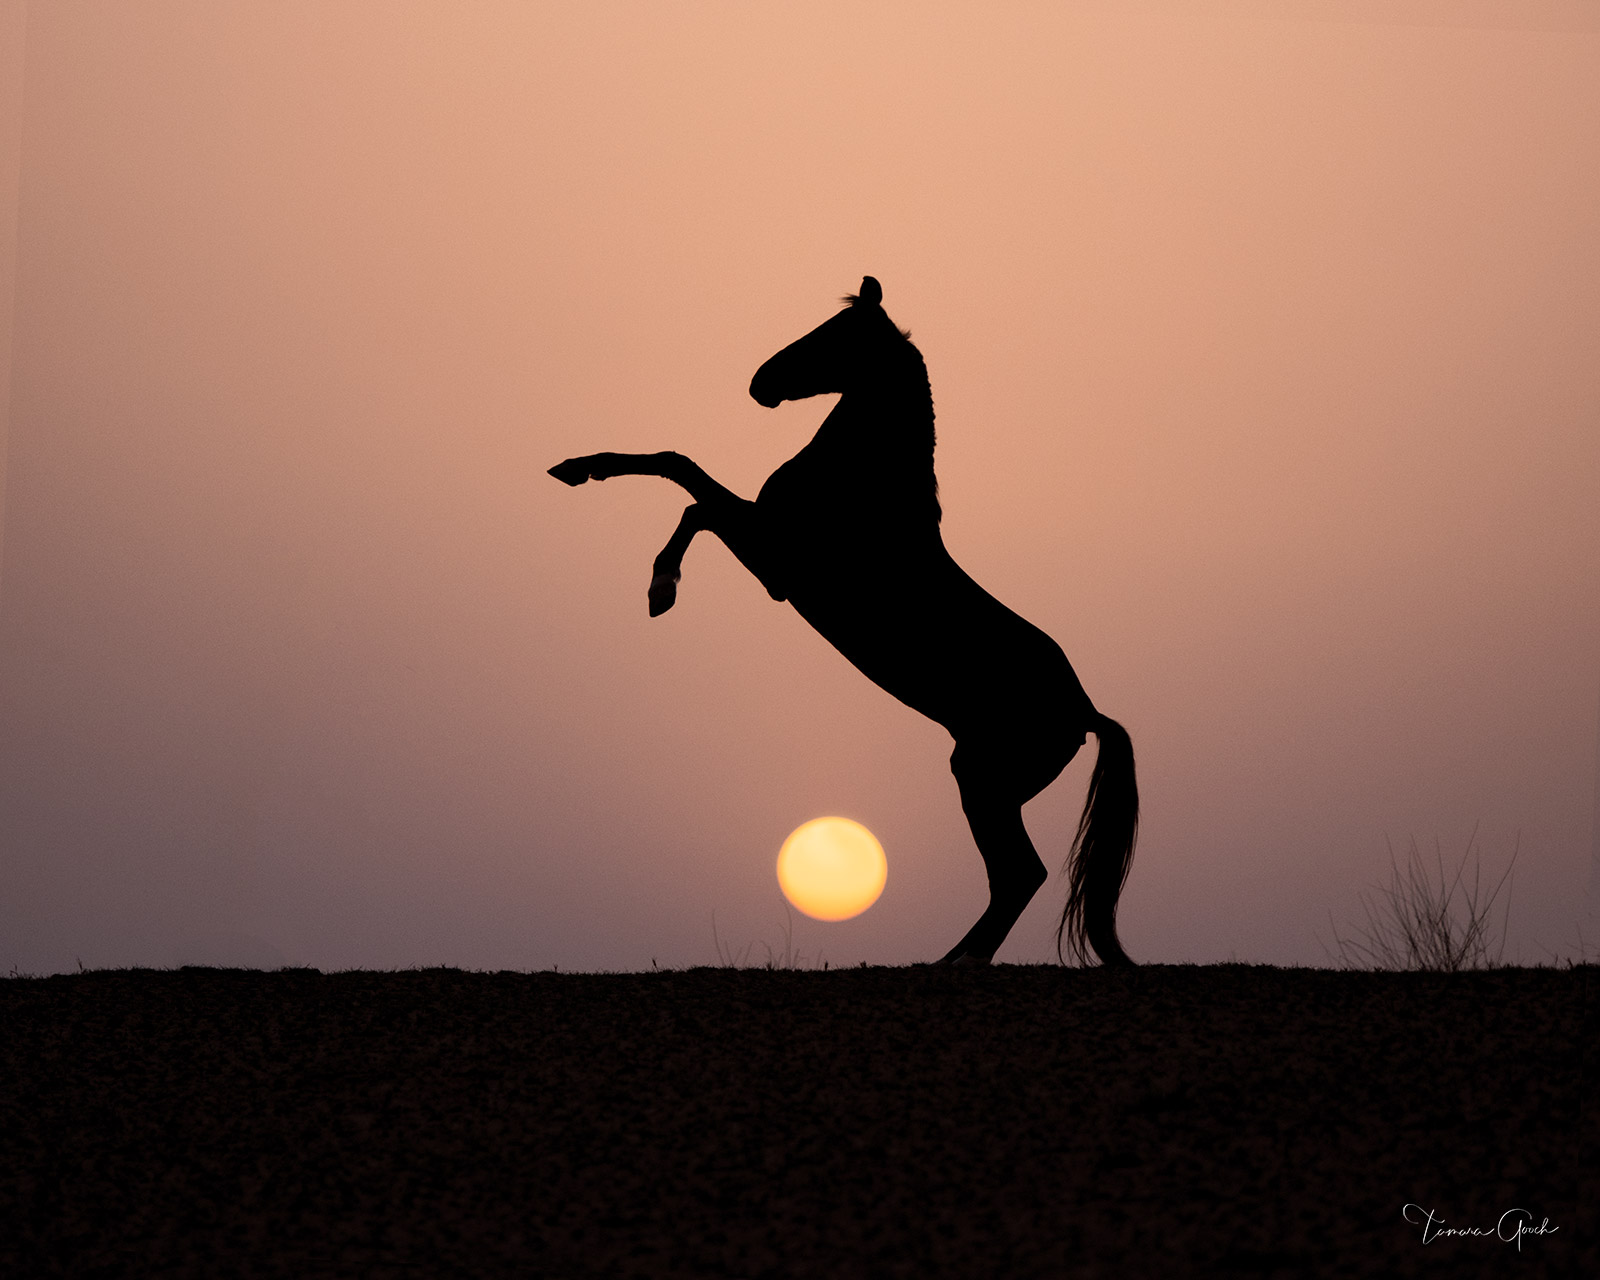 Limited edition equestrian wall art photo print for sale of a Marwari horse rearing at sunrise.